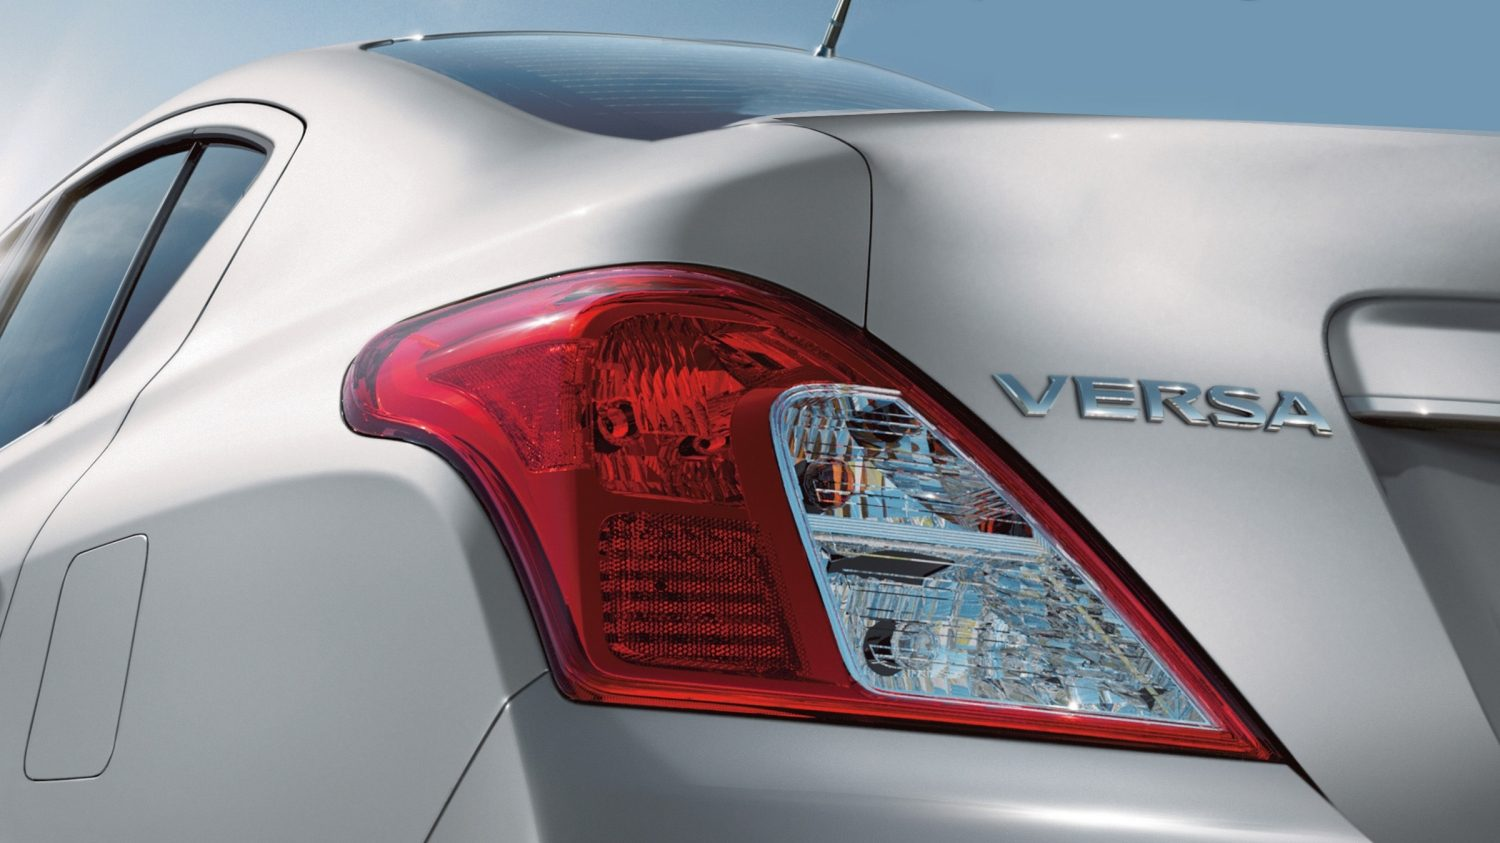 Nissan Versa tail lamps